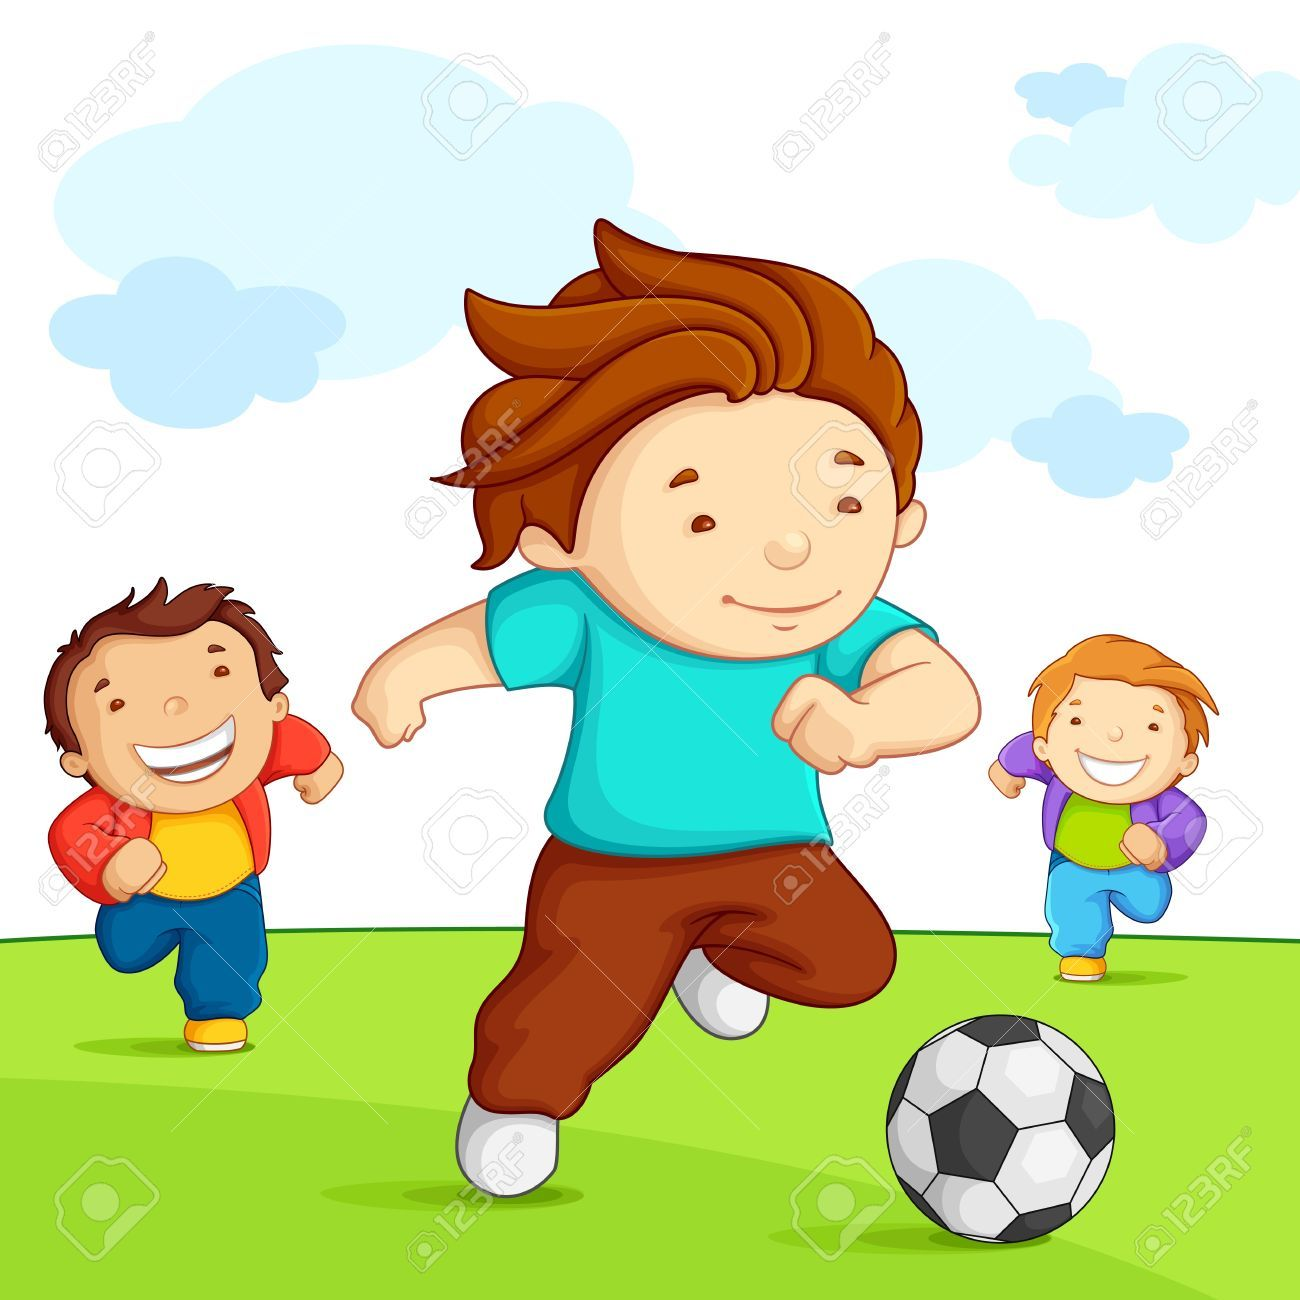 Kids playing soccer clipart 5 » Clipart Portal.